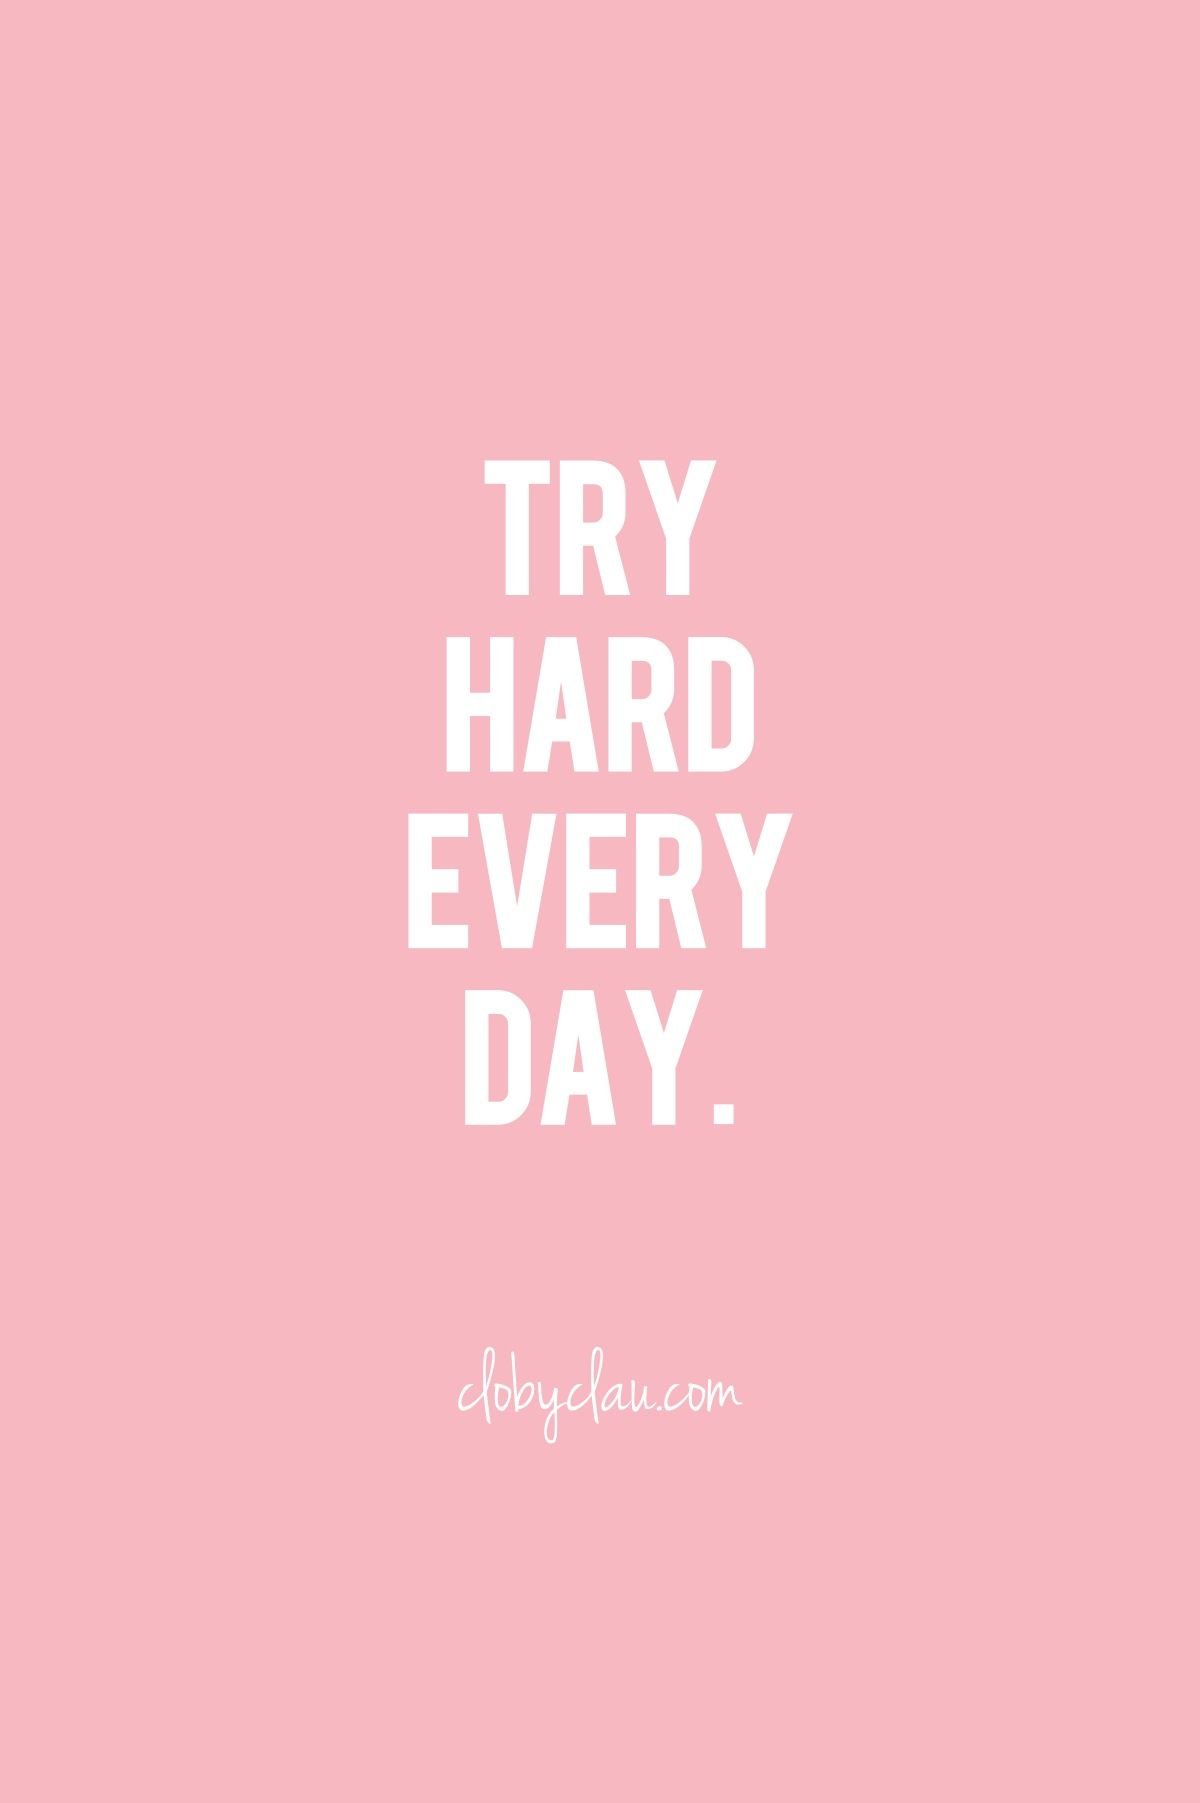 Try Hard Every Day Clobyclau Com Inspirational Quote Quotes